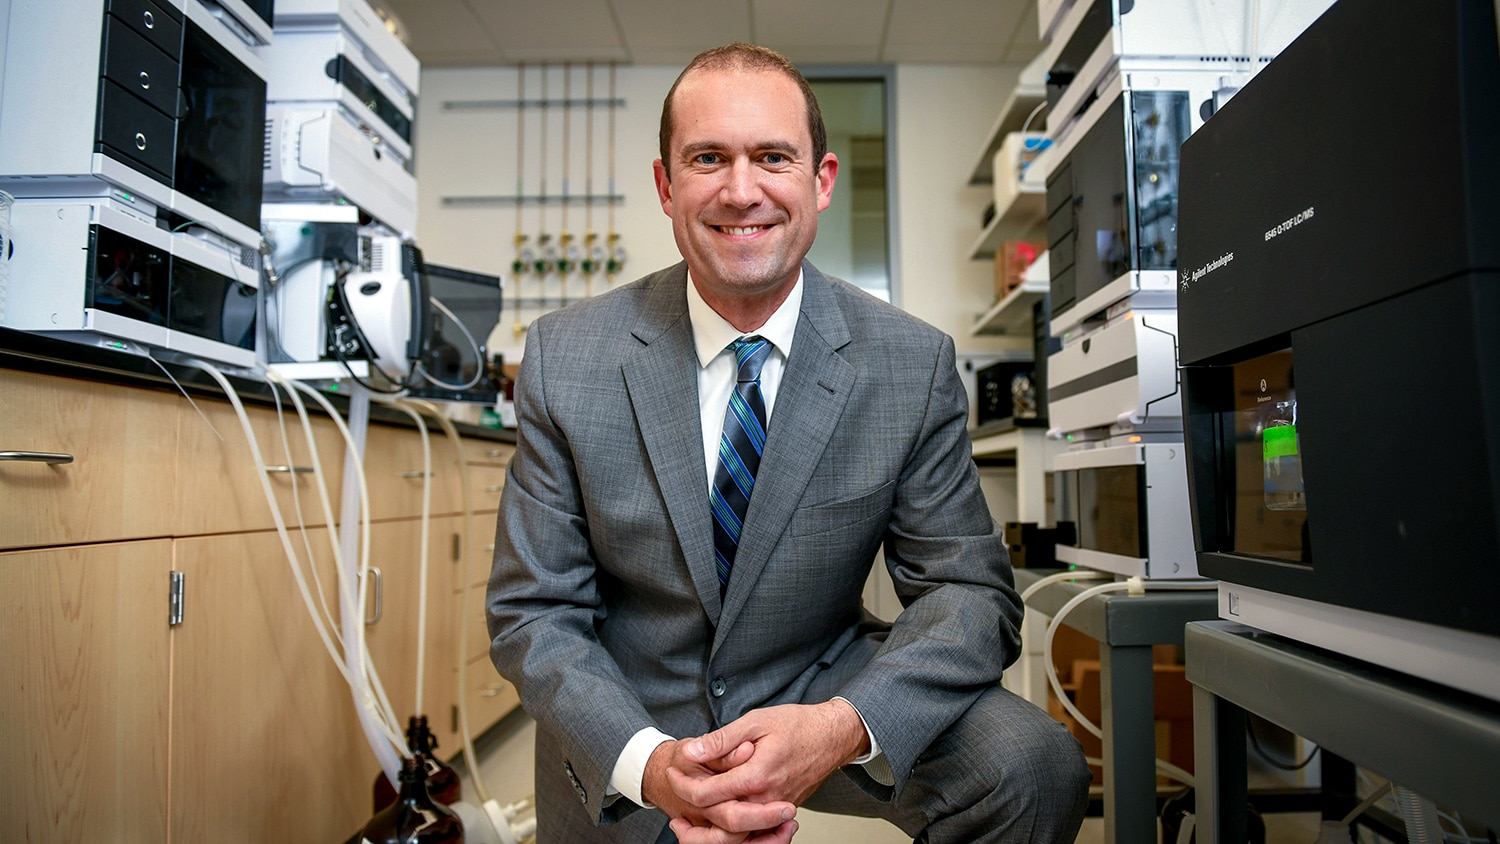 A portrait of Jacob Jones, Jacob Jones, director of the STEPS Center and professor of materials science and engineering at NC State